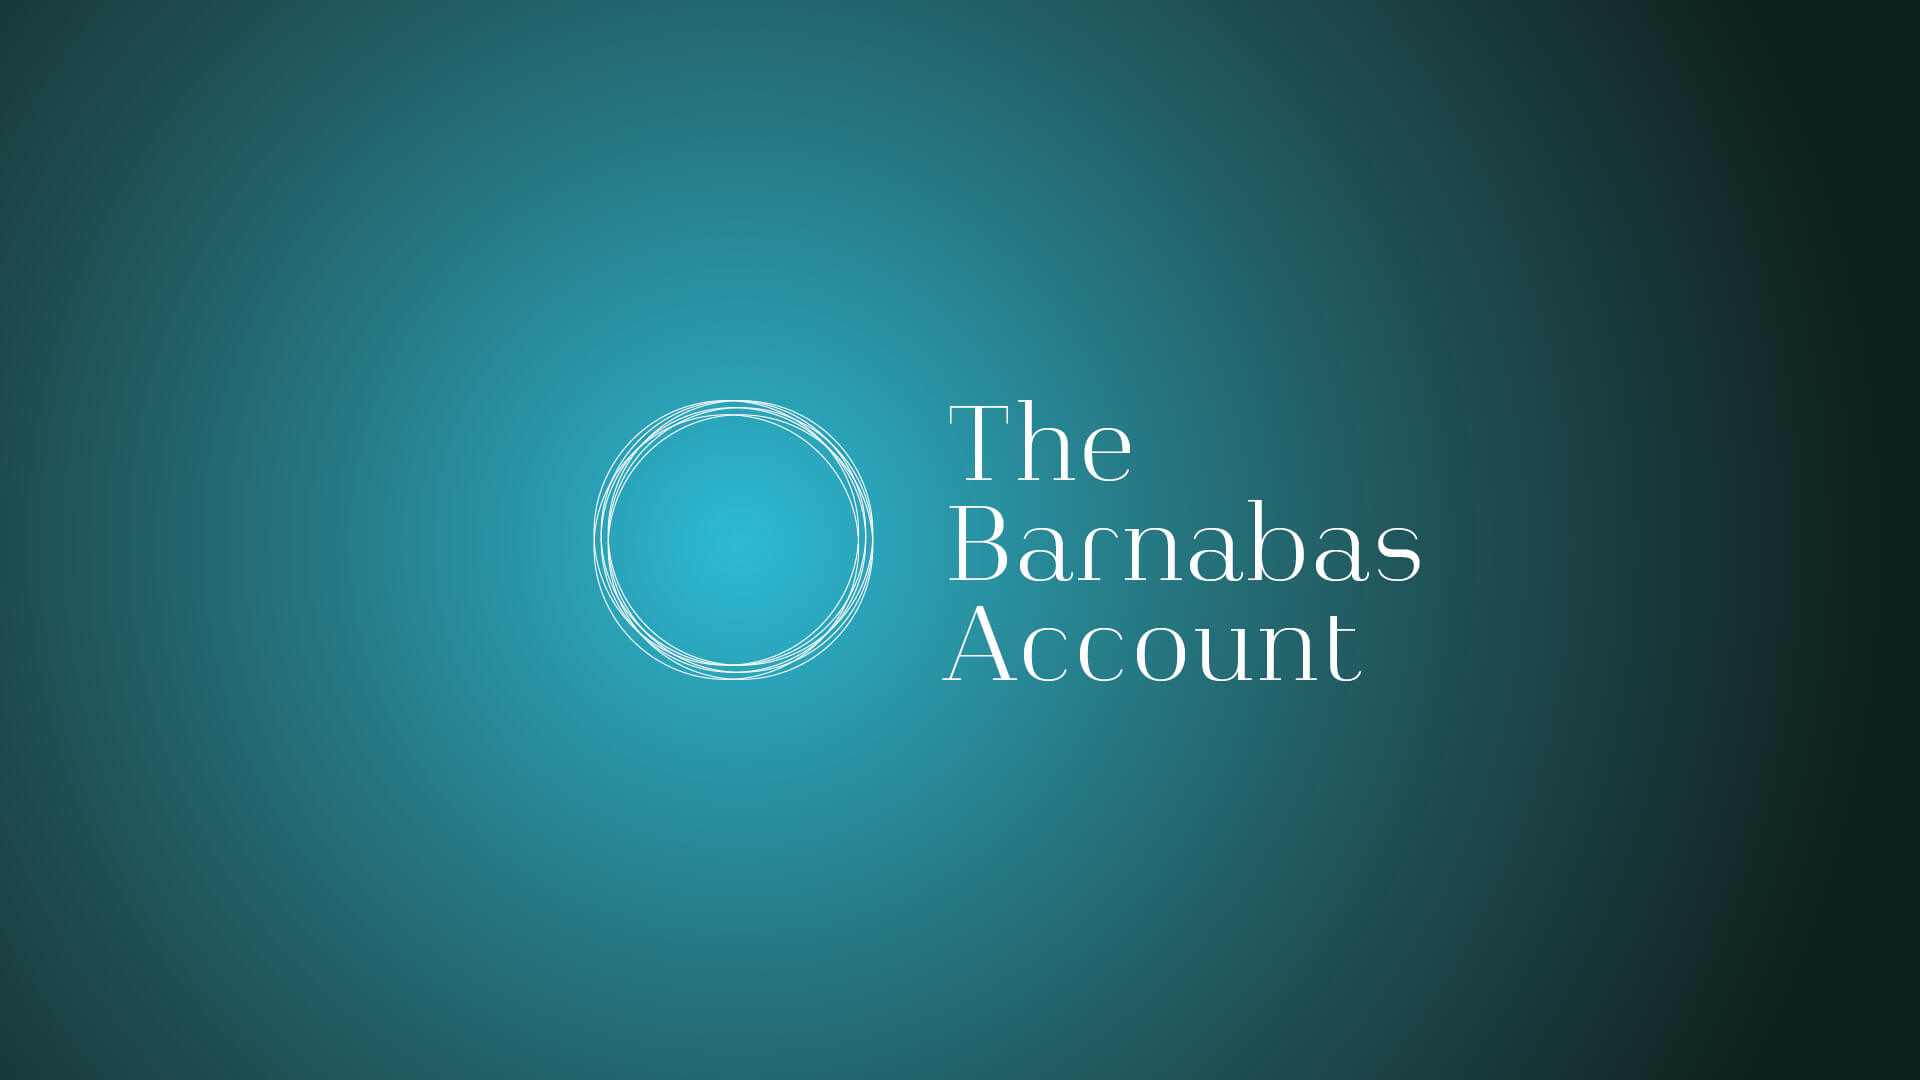 The Barnabas Account